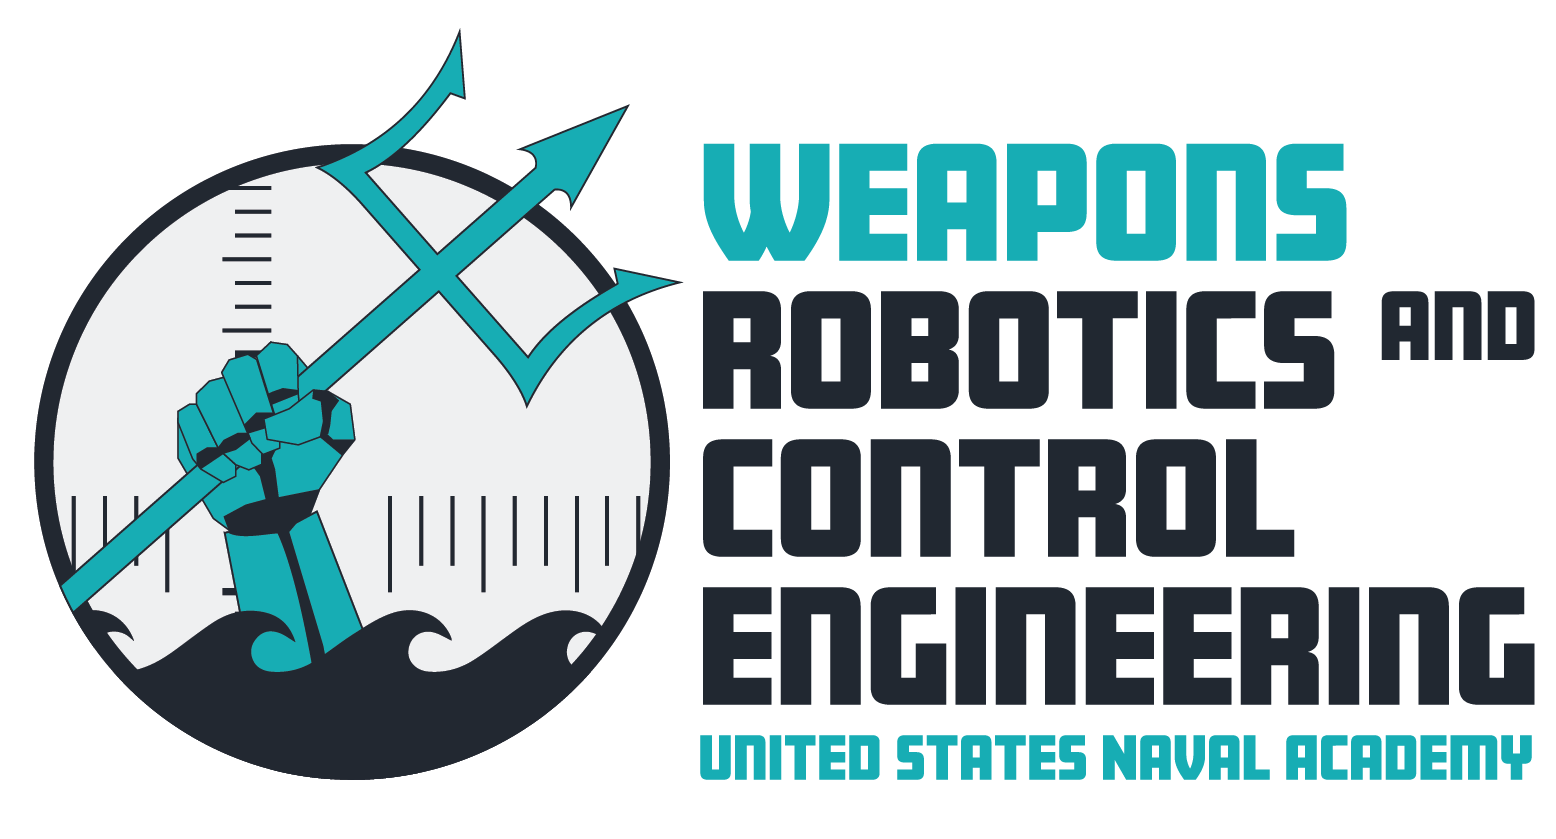 Wrc Home Weapons Robotics And Control Engineering Usna